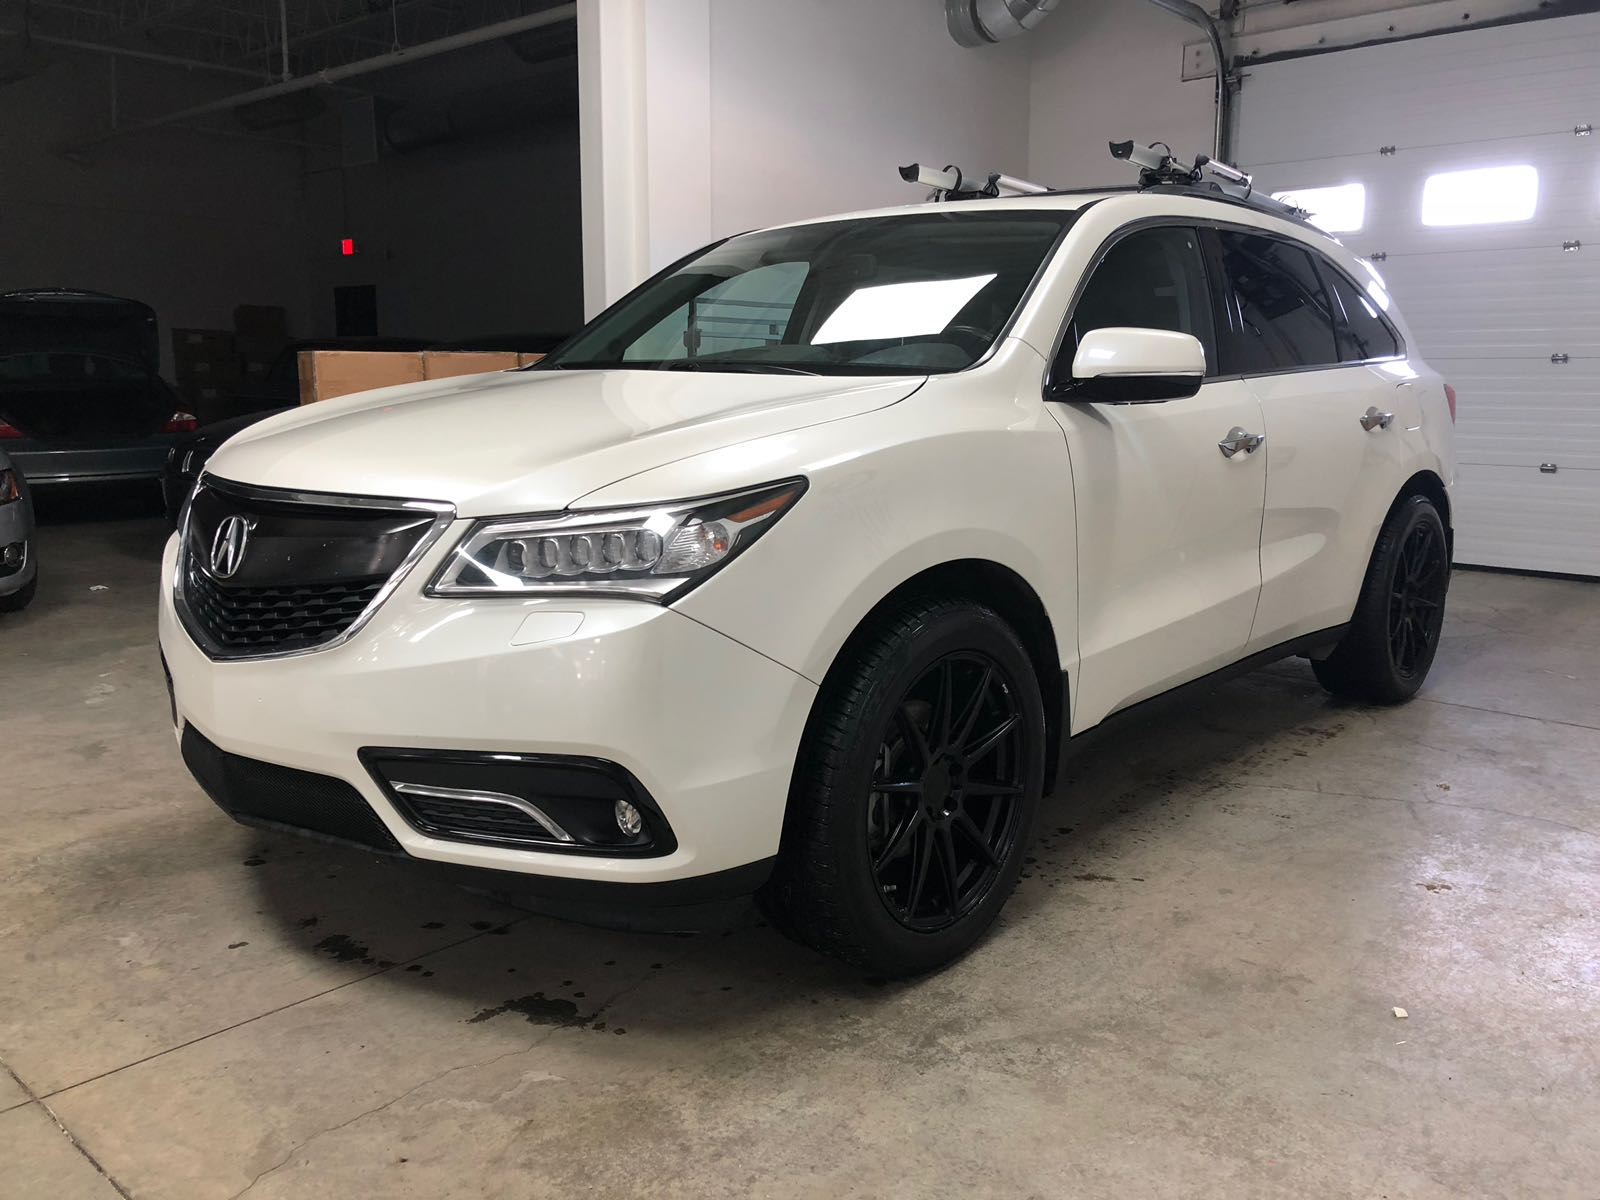 2014 Acura Mdx Awd 1 Owner Factory Warranty 7 Passenger Leather